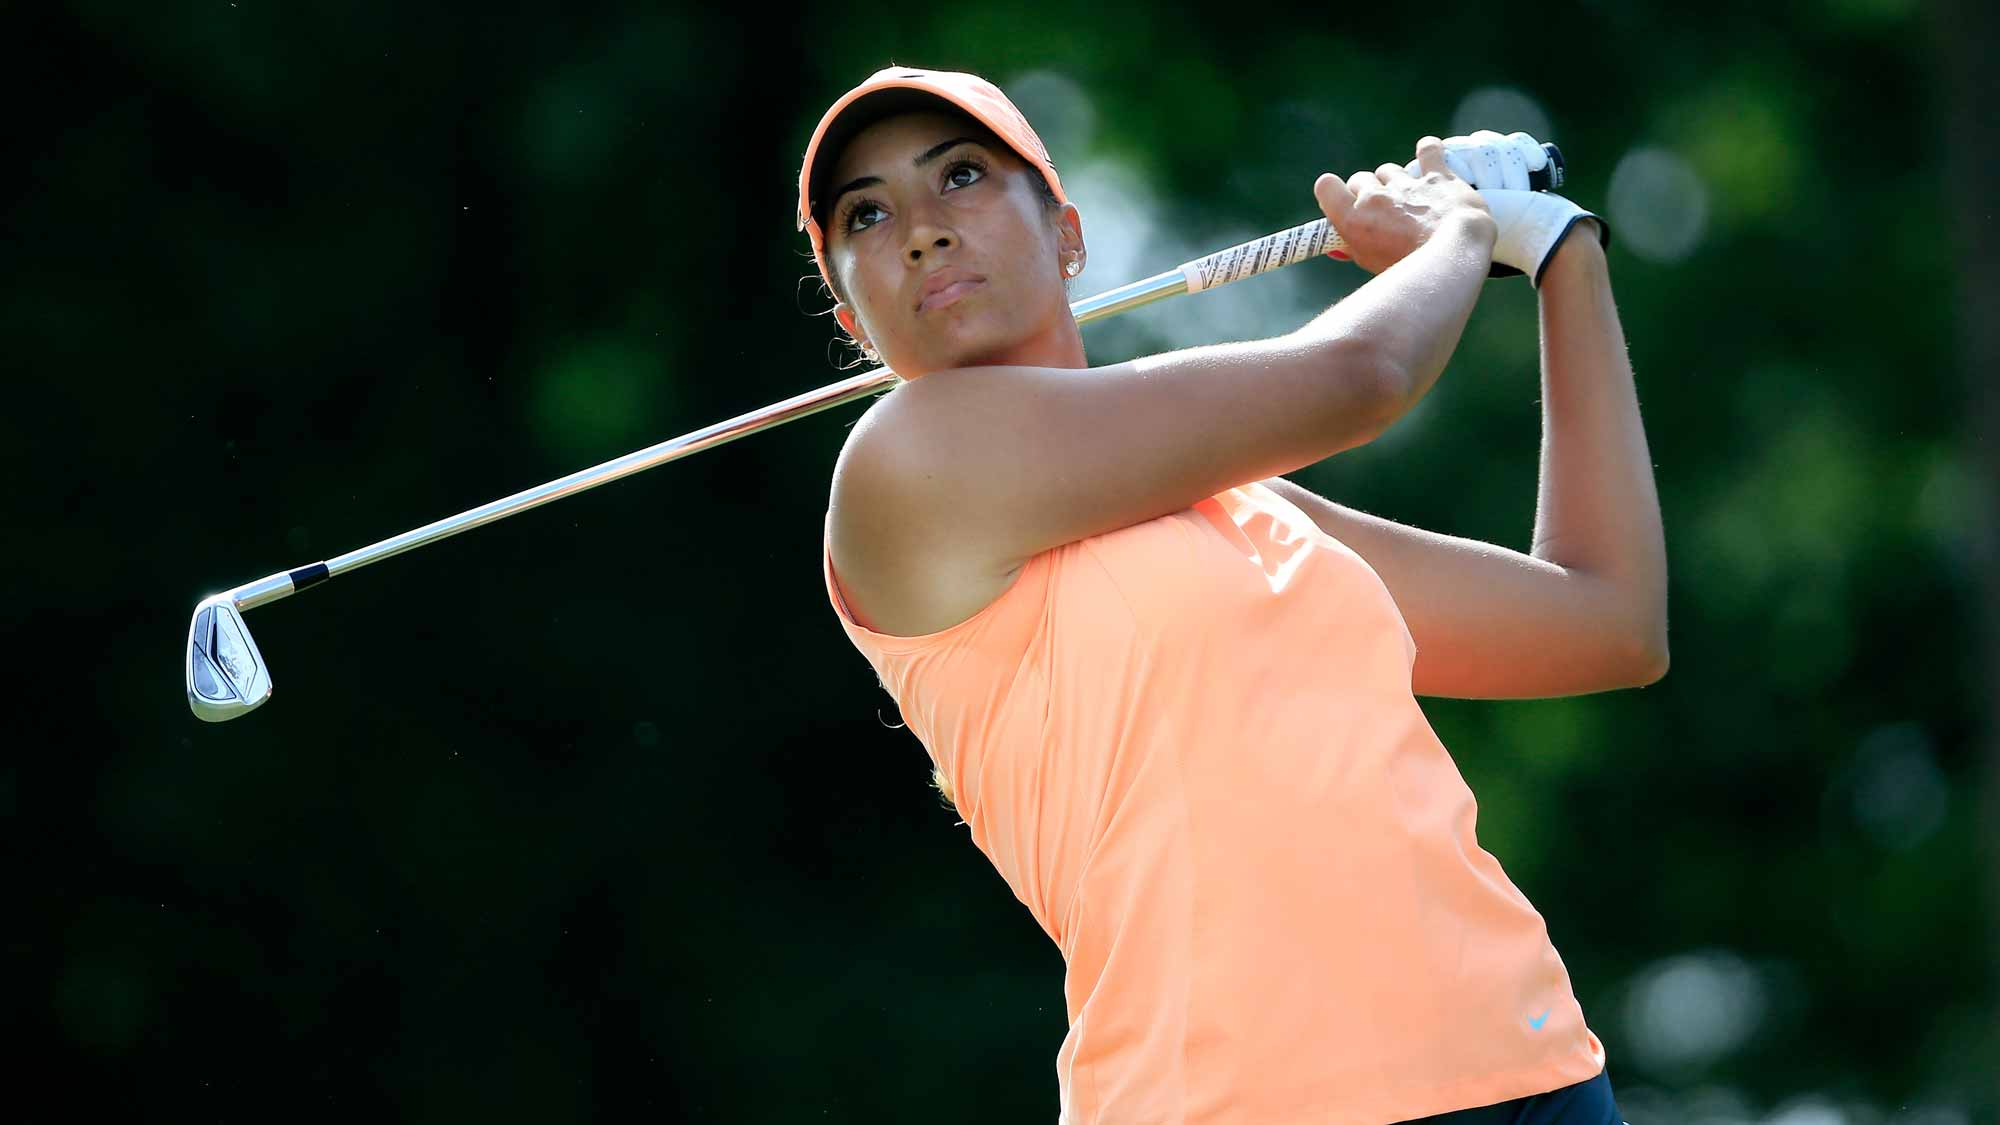 Cheyenne Woods of the United States plays a shot on the third hole during the first round of the Walmart NW Arkansas Championship Presented by P&G at Pinnacle Country Club